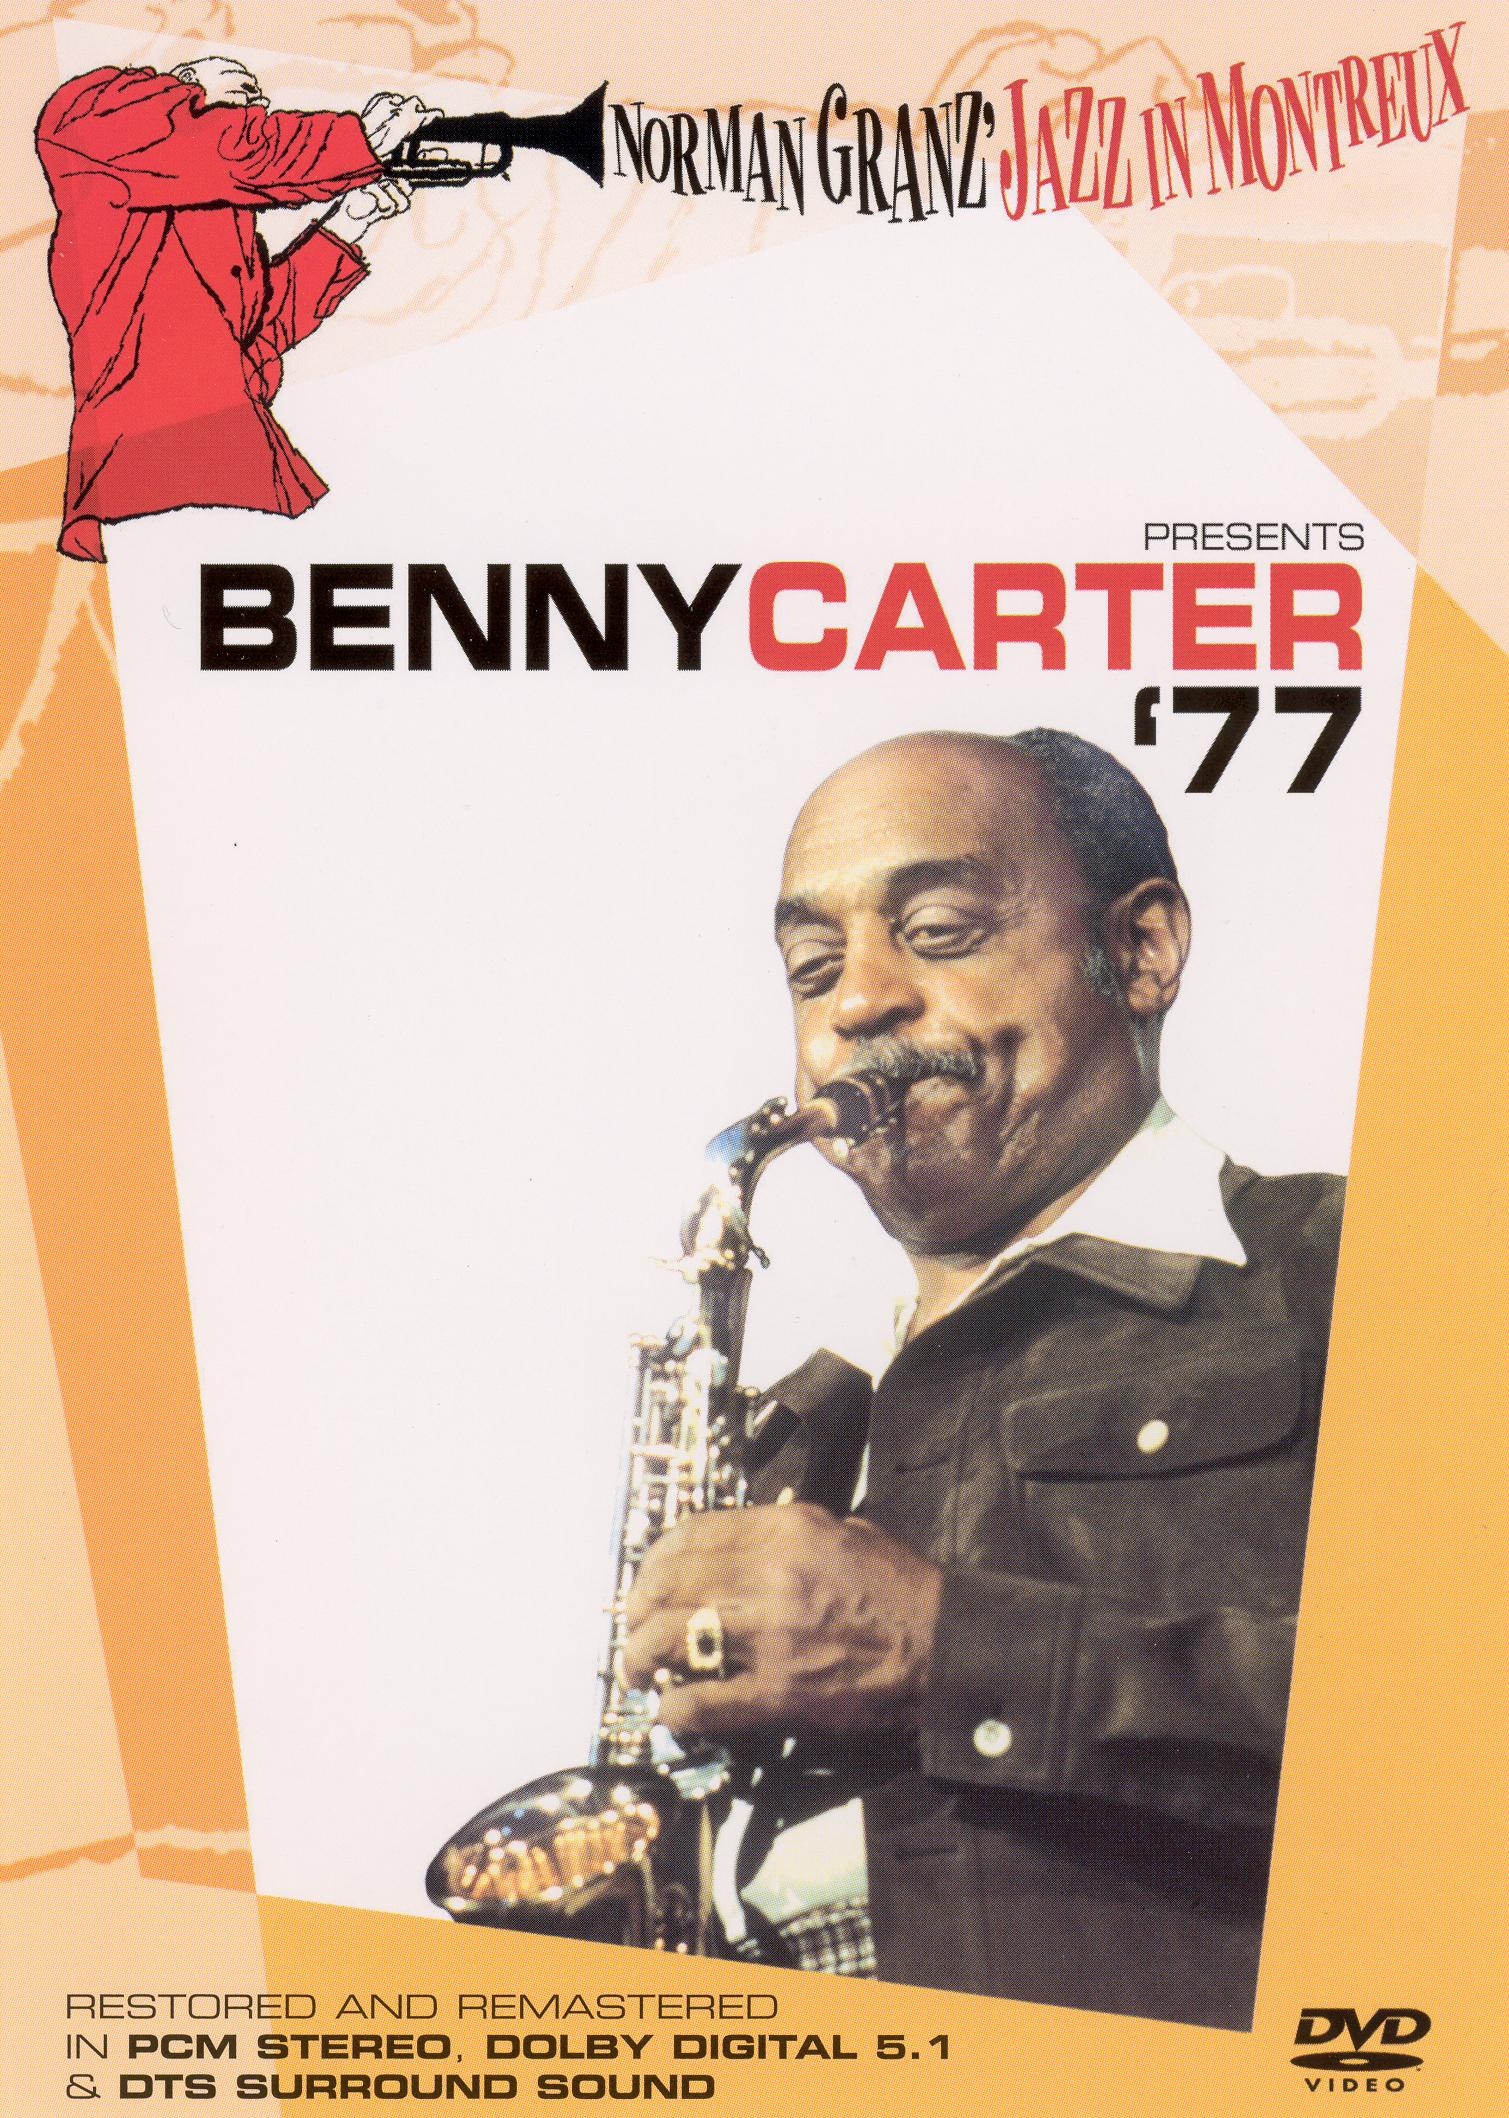 Norman Granz' Jazz in Montreux: Benny Carter '77